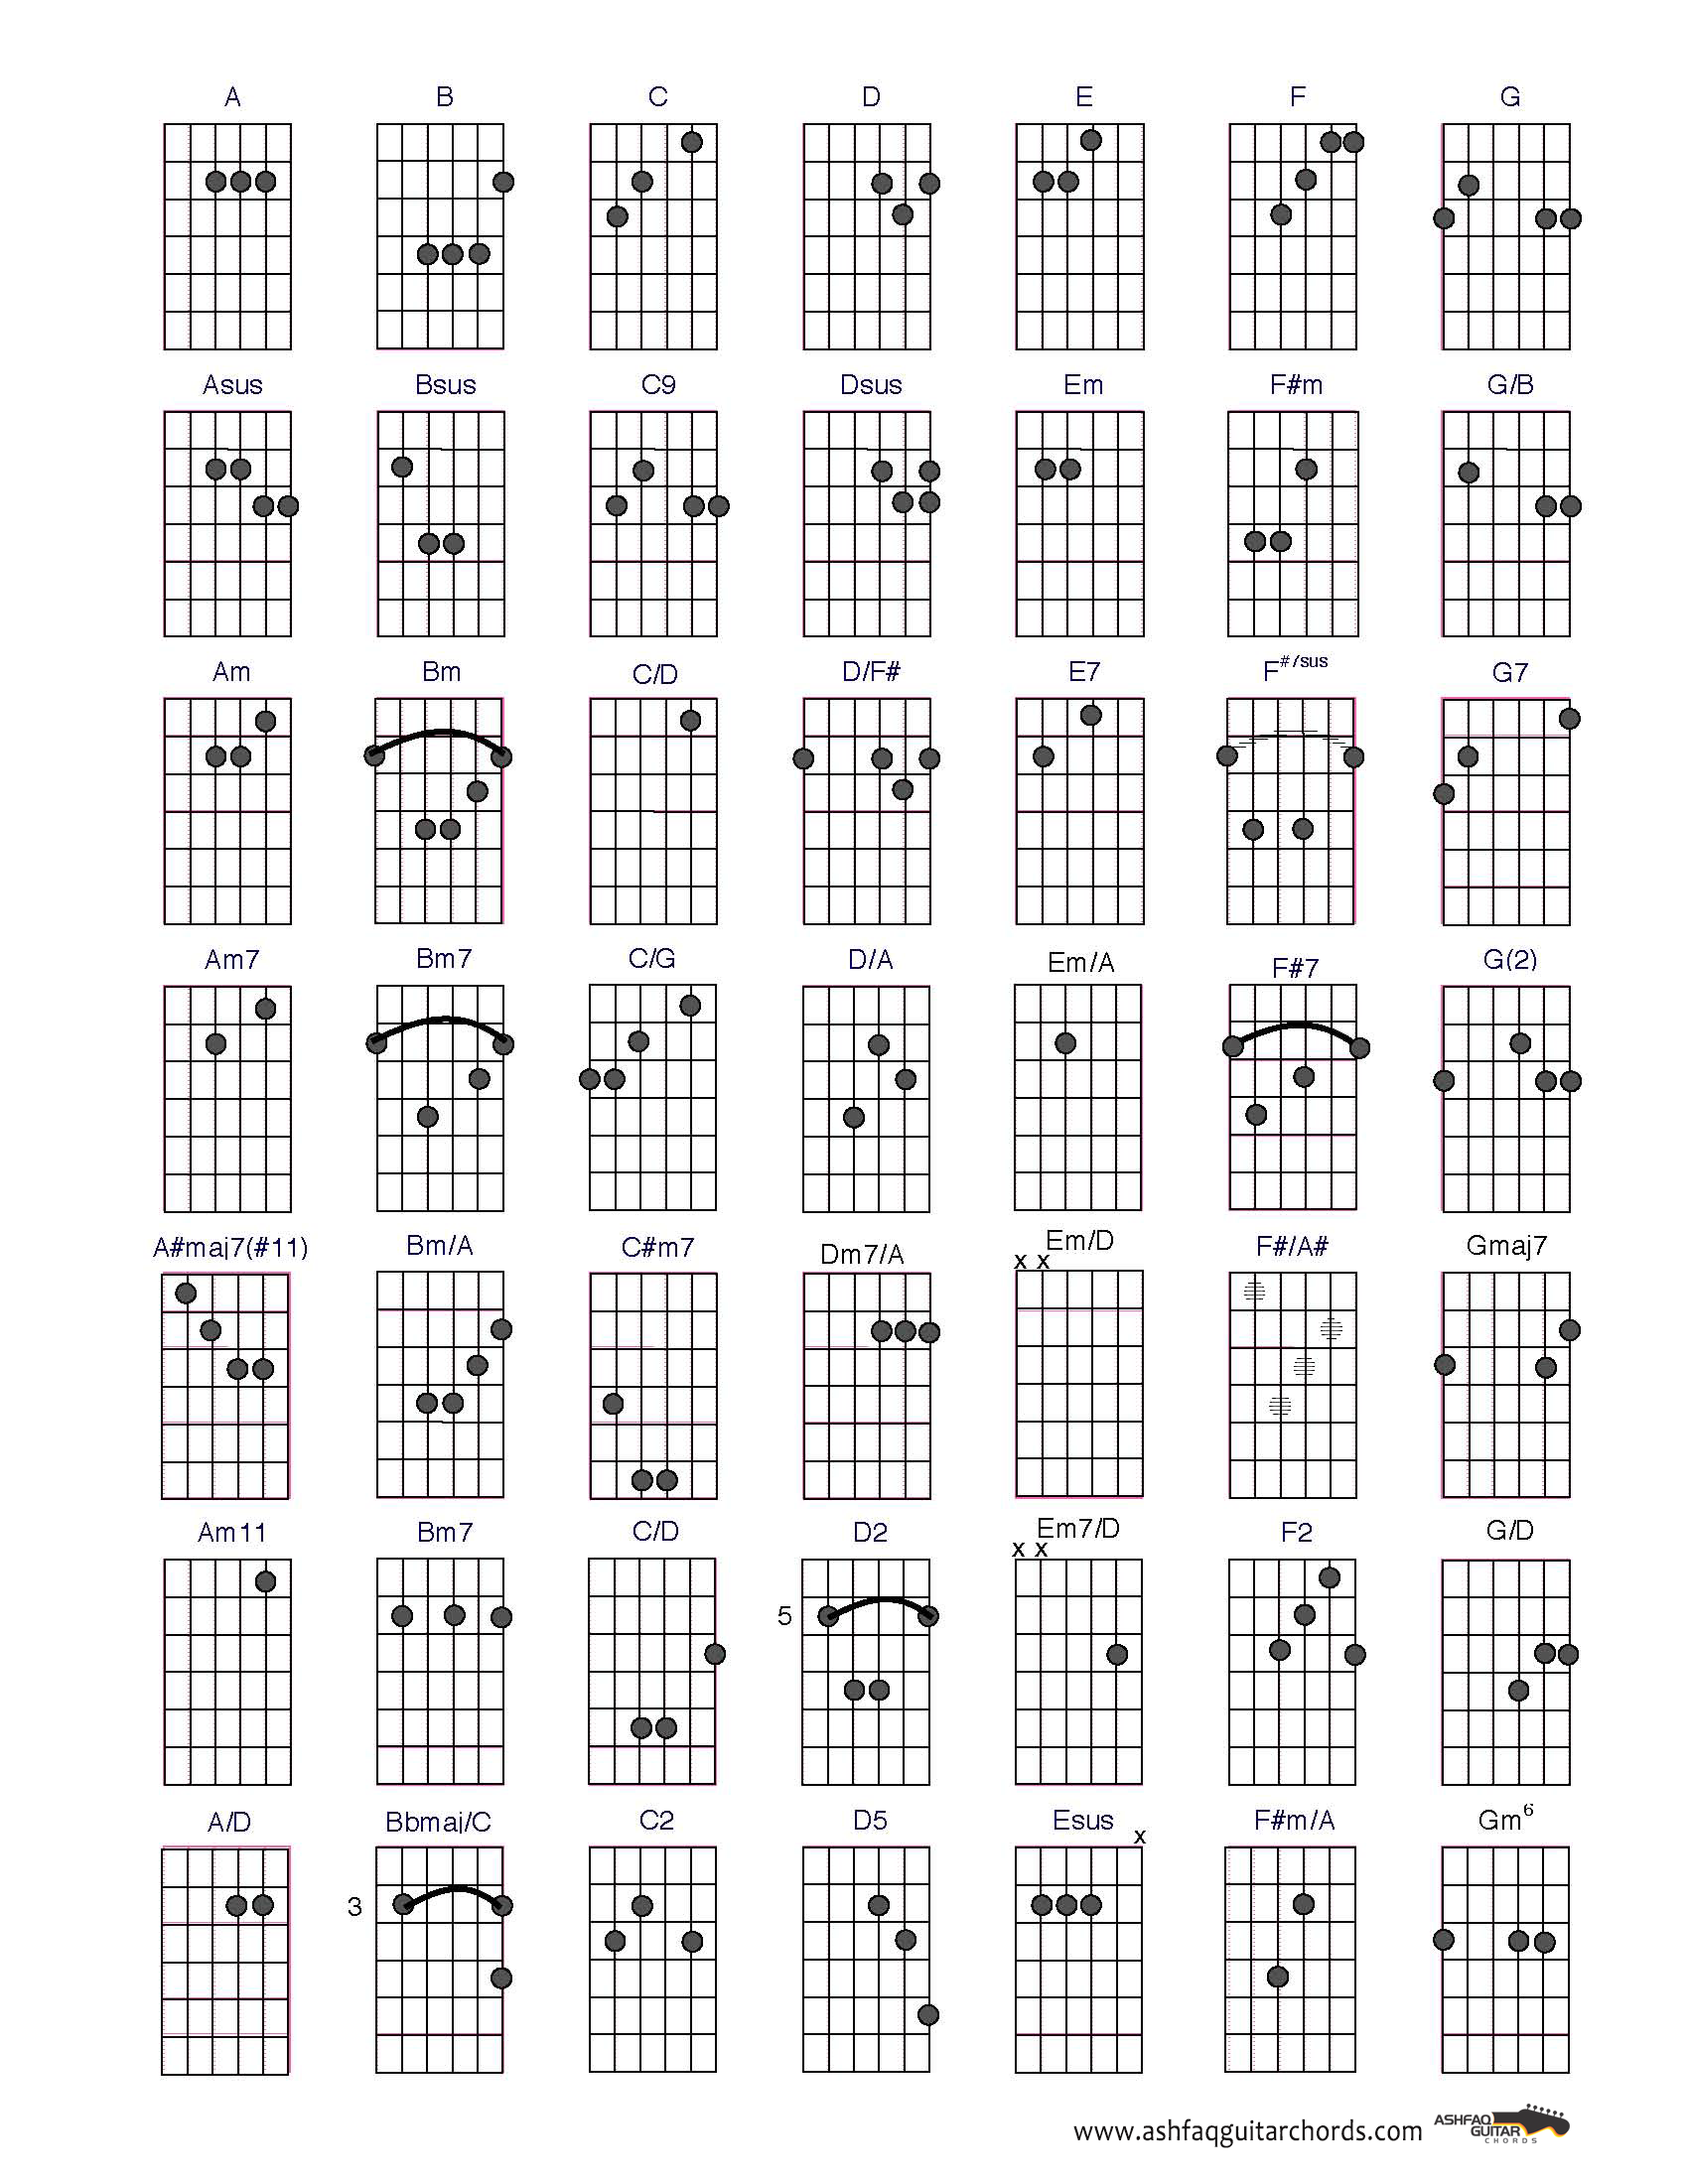 Ashfaq Guitar Chords Ashfaqguitar On Pinterest